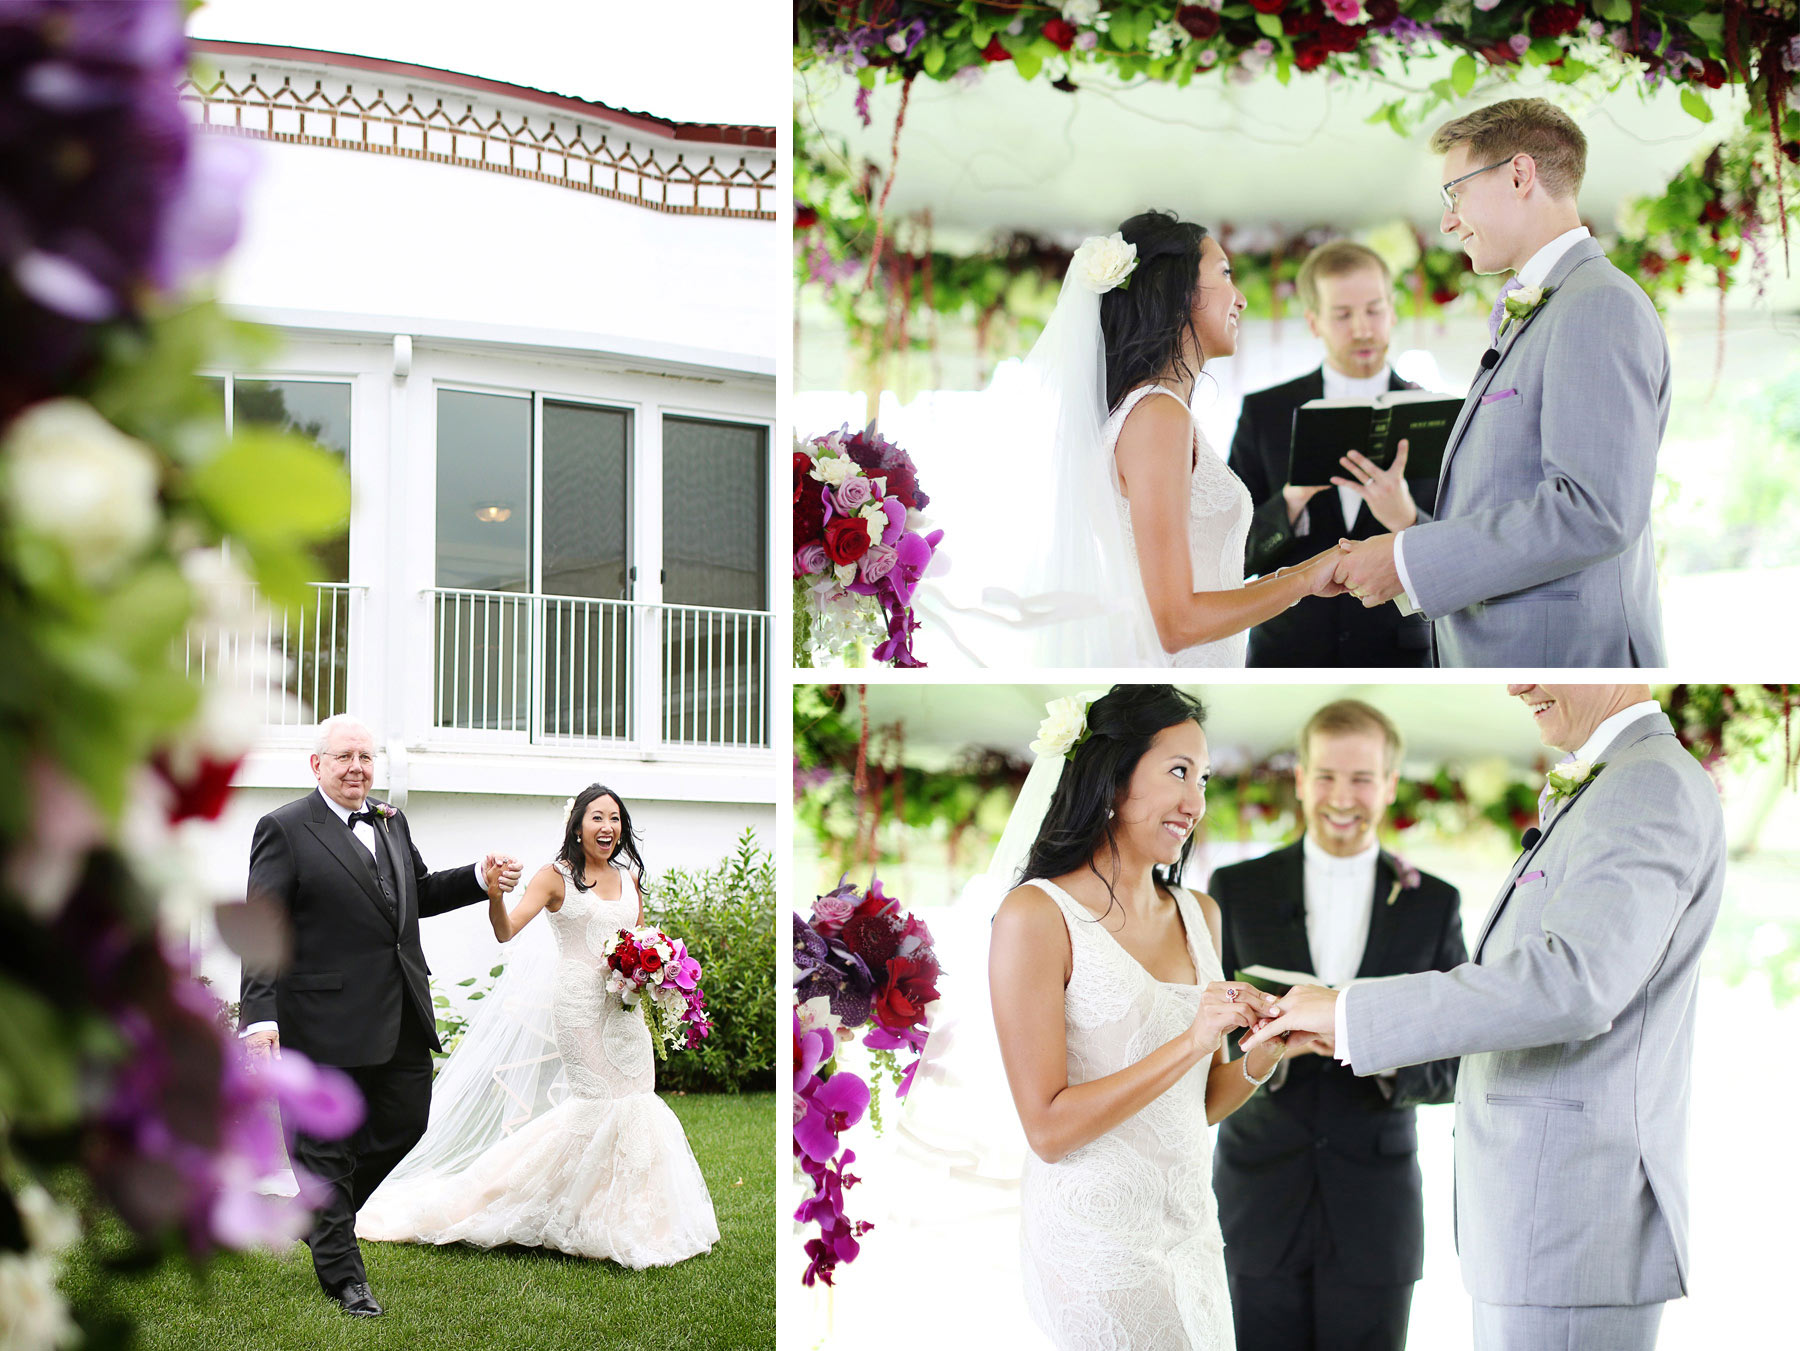 10-Minneapolis-Minnesota-Wedding-Photography-by-Vick-Photography-Lafayette-Country-Club-Outdoor-Ceremony-Daphne-&-Austin.jpg